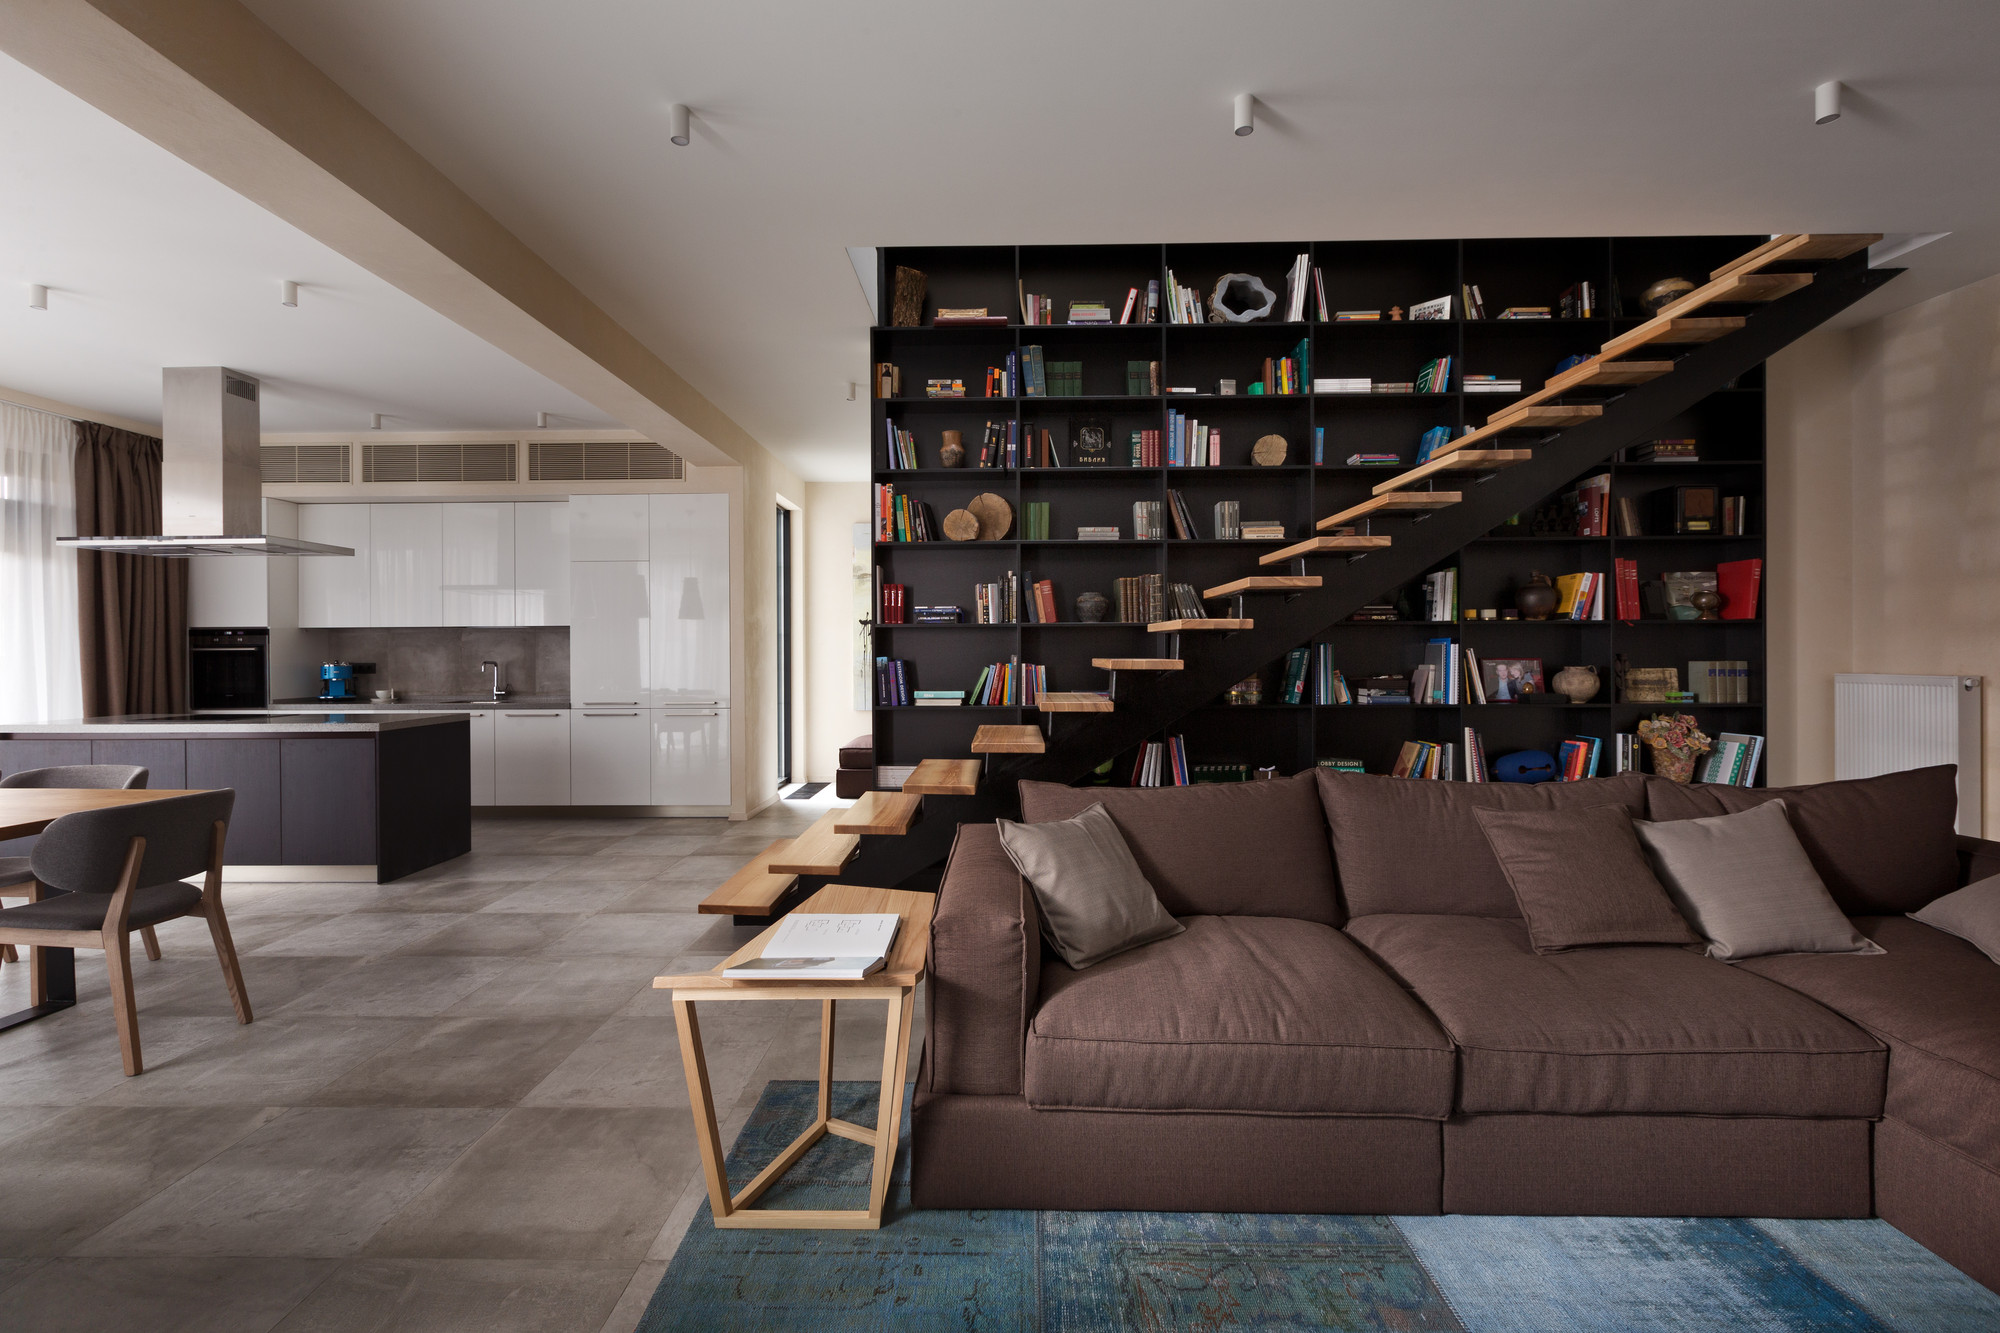 Buddy's House - A Truly Modern Home By Sergey Makhno In ...